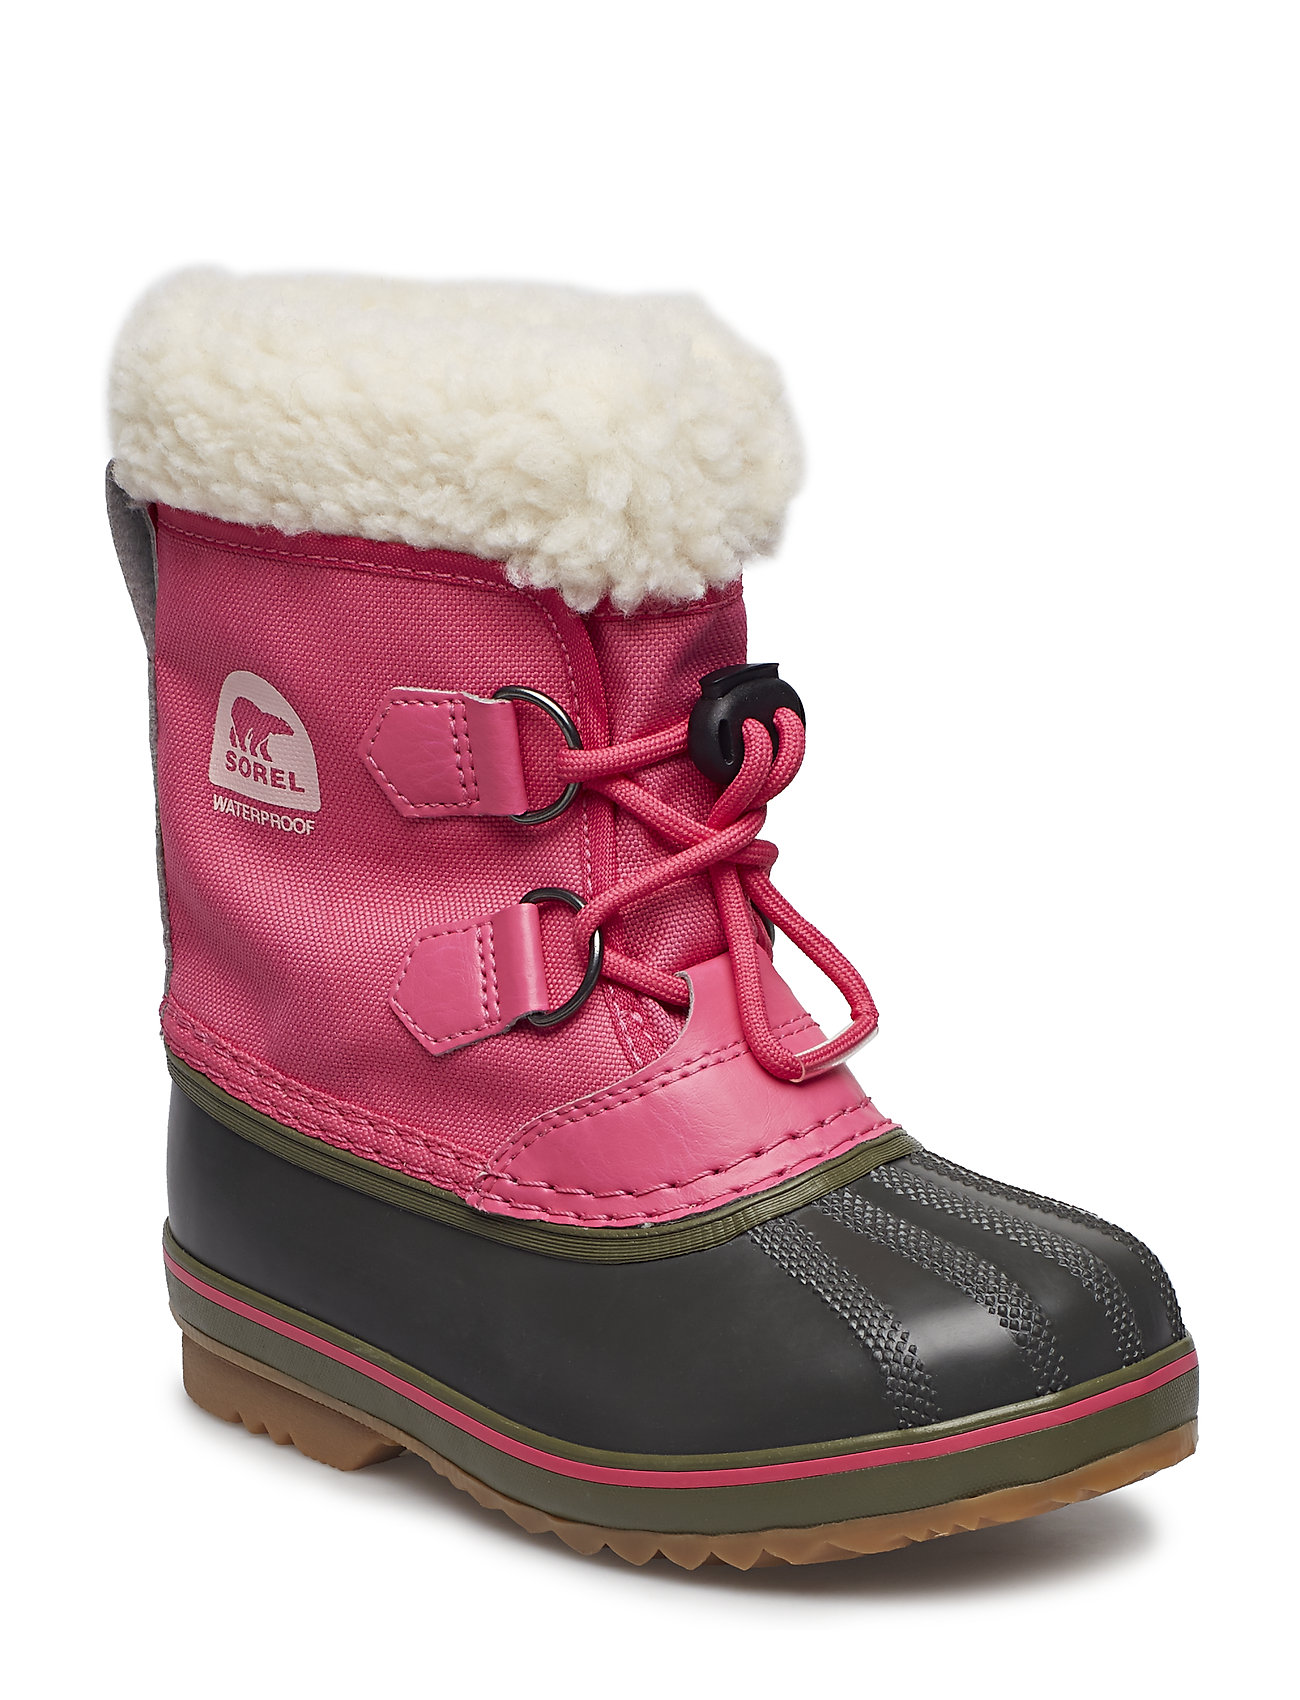 Sorel Childrens Yoot Pac Nylon - ULTRA PINK, ALPINE TUNDRA